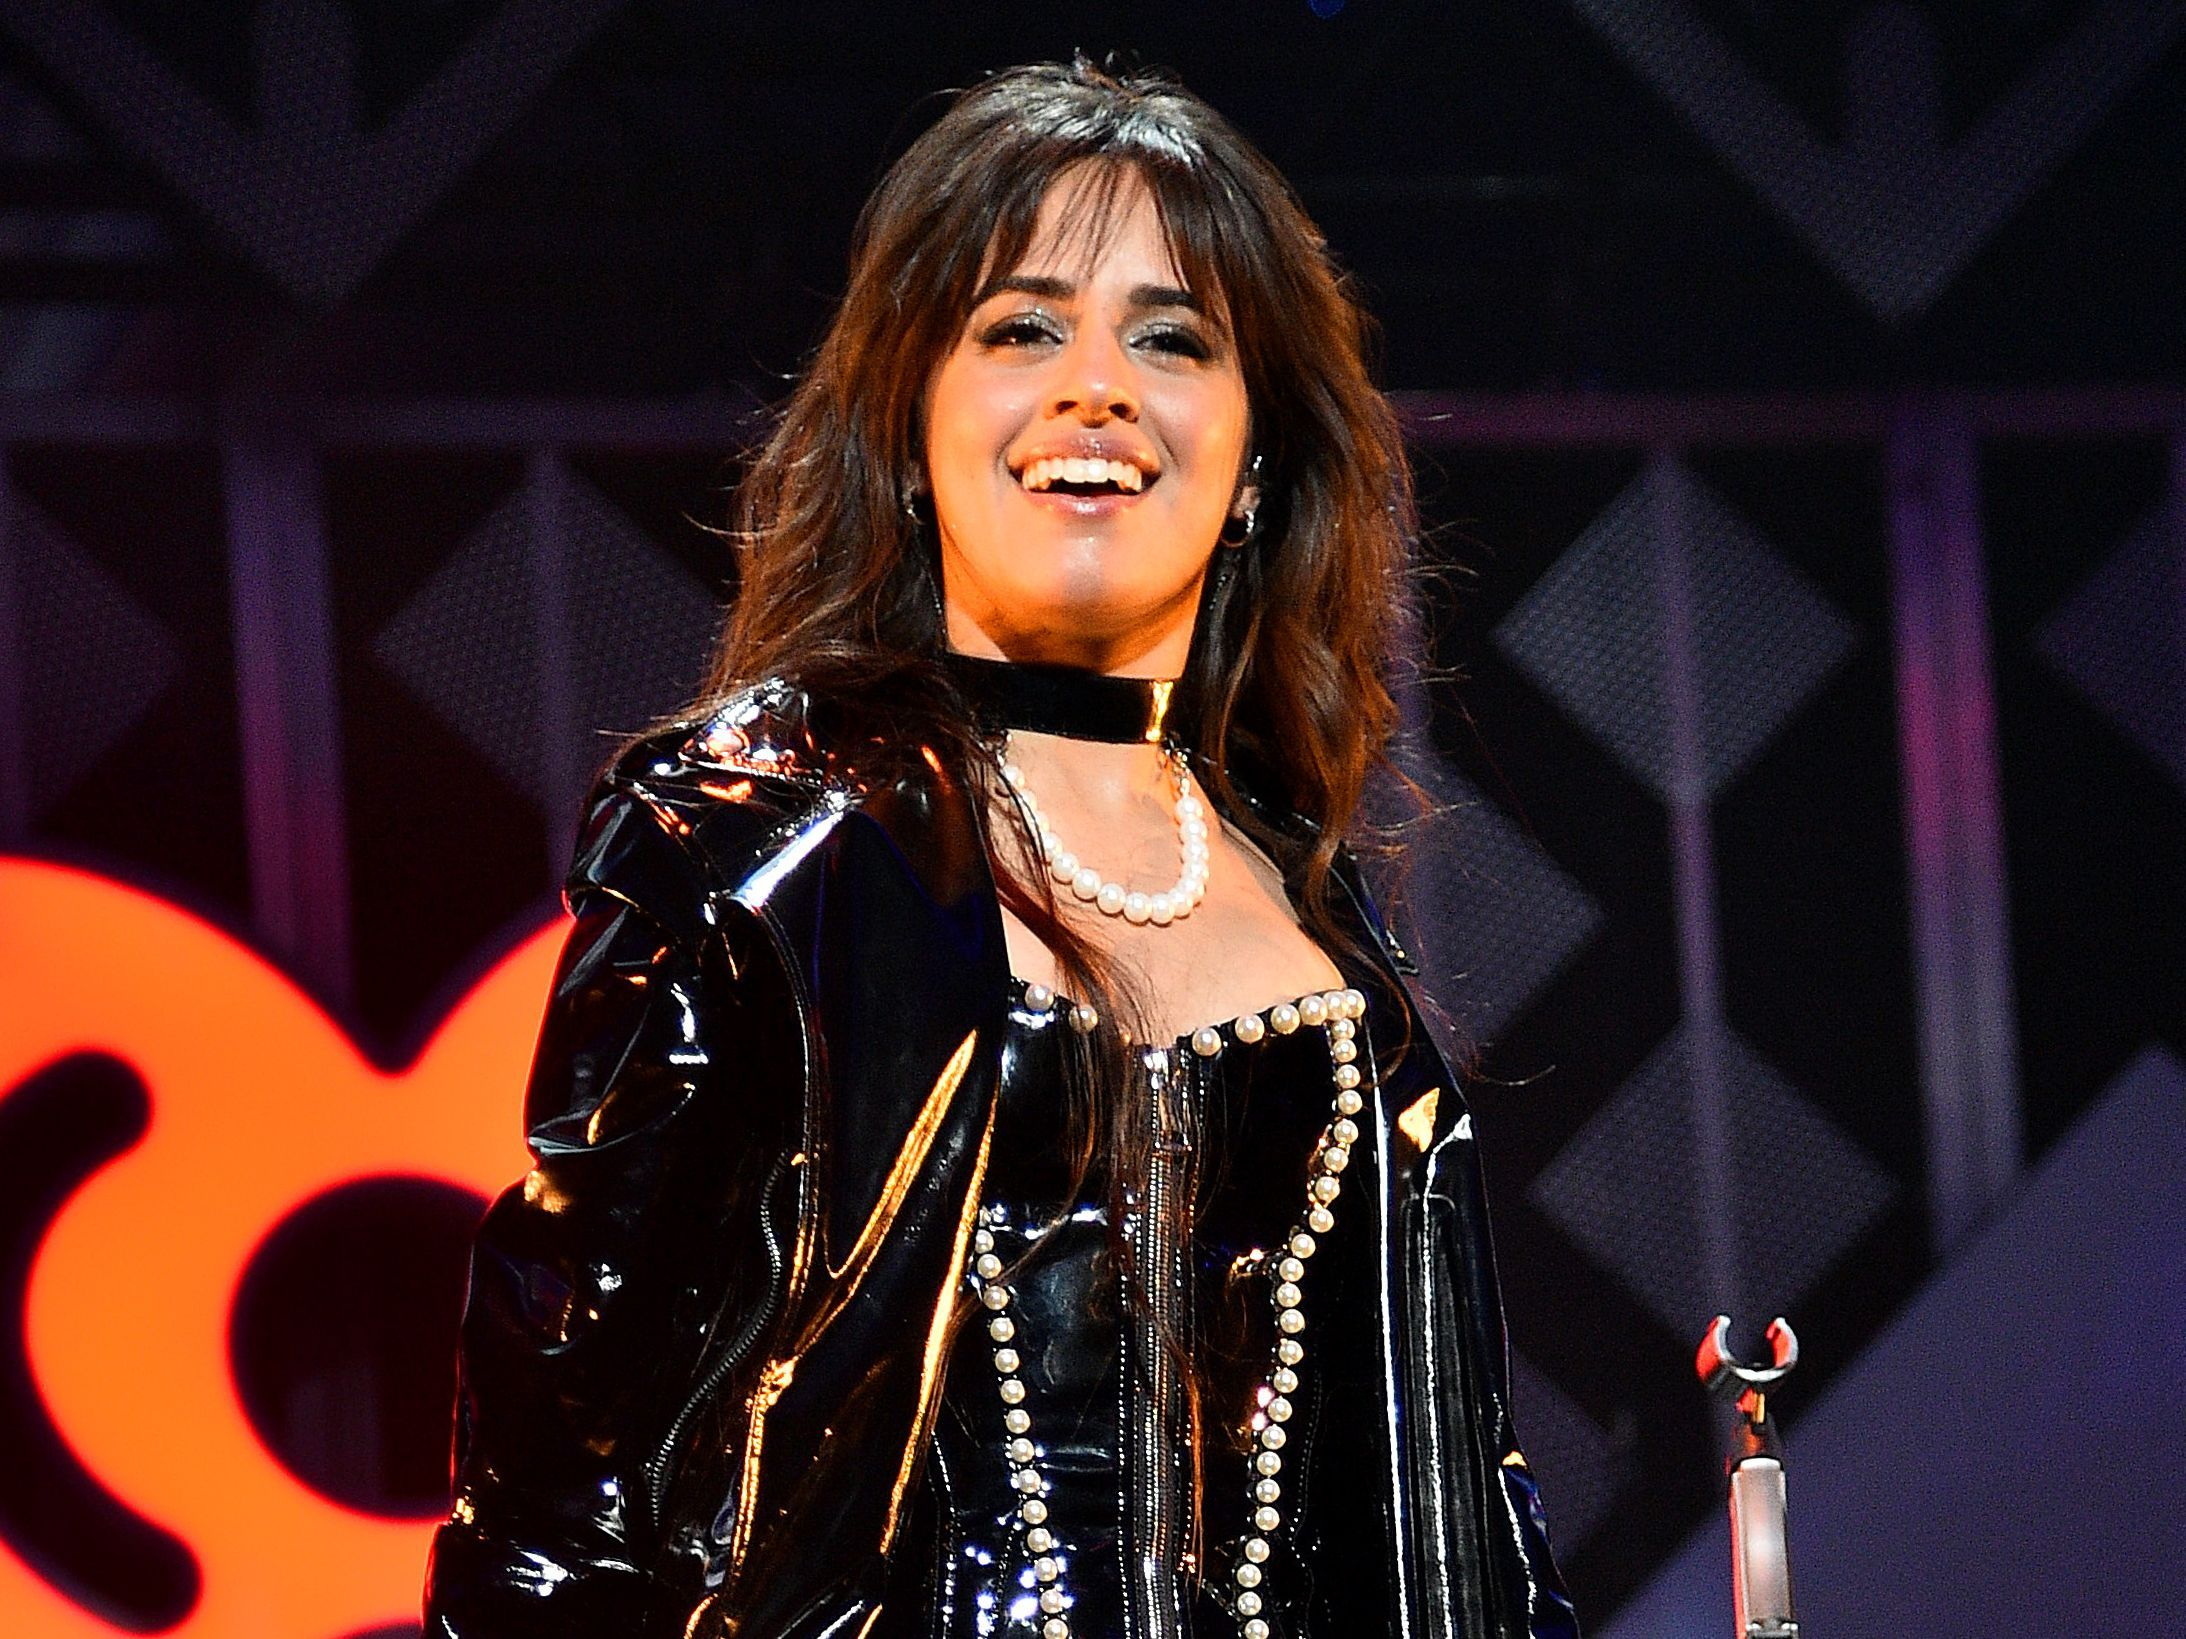 Camila Cabello Sings Shawn Mendes' Song in Riff-Off With James Corden